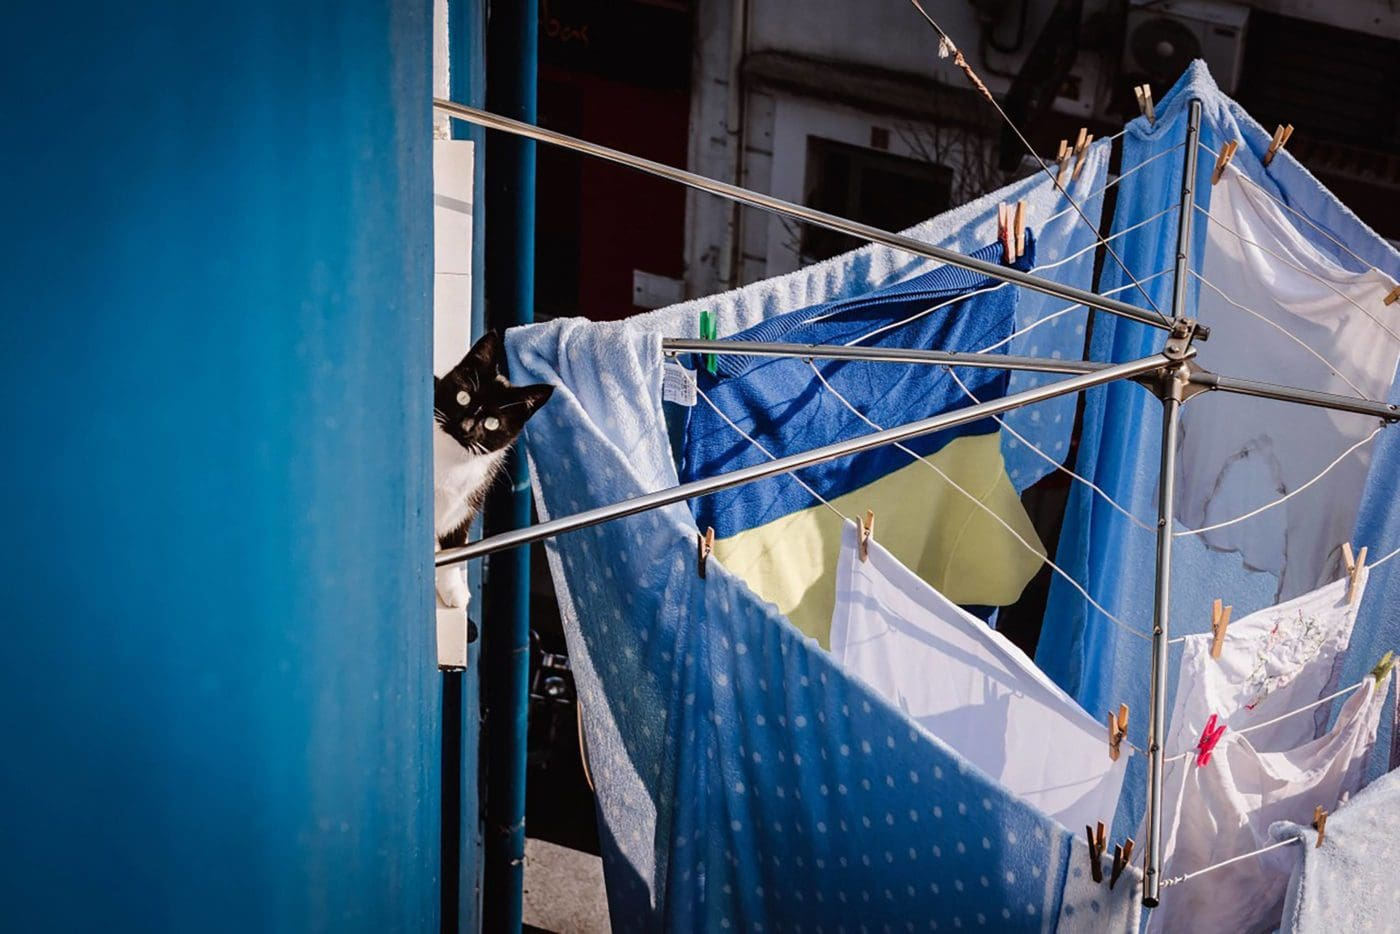 Postcard from Spain: Laundry Day in Santander